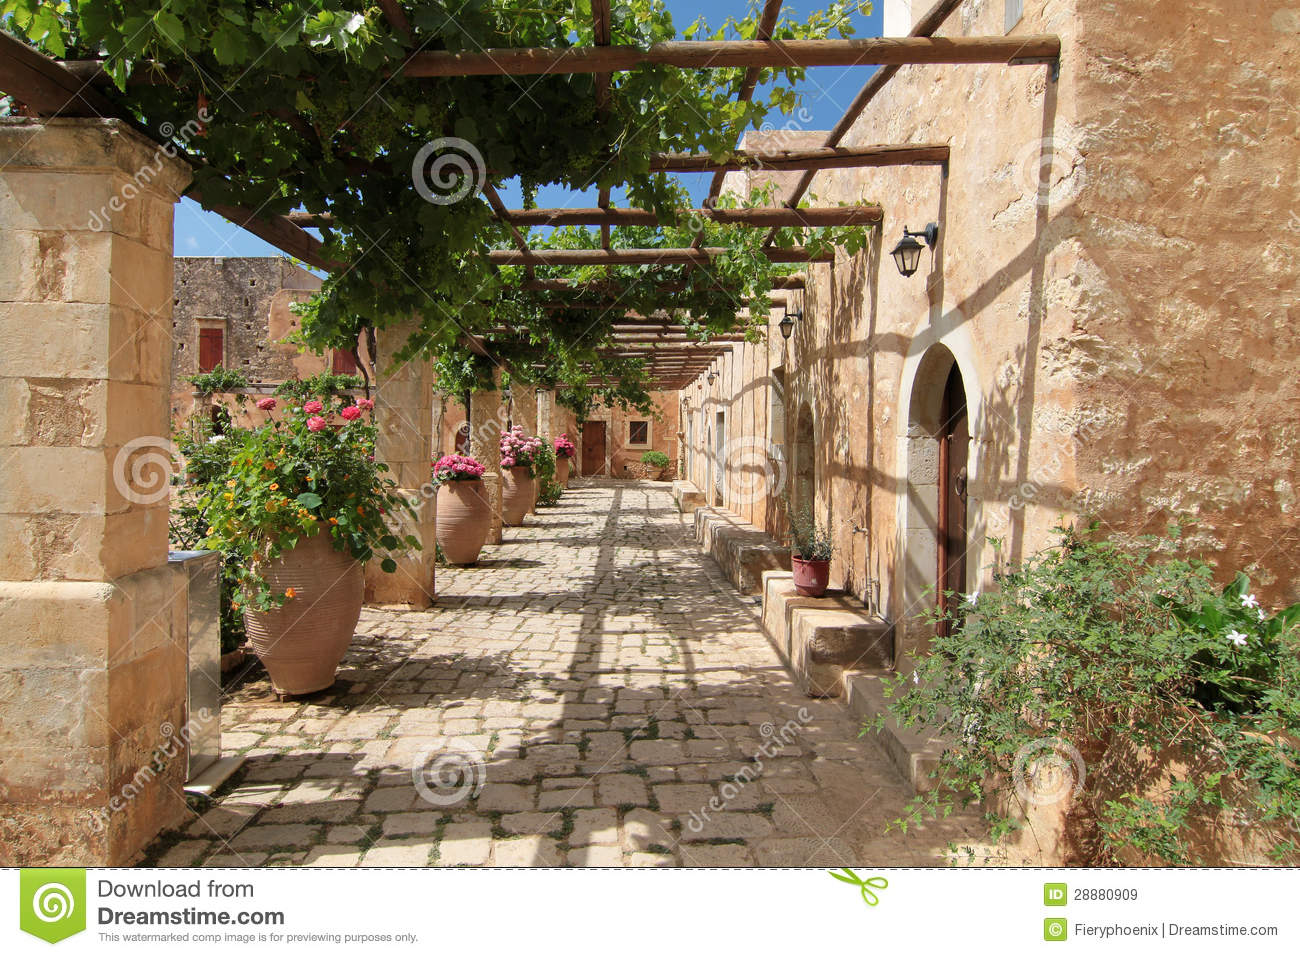 Garden Courtyard With Flowers In Ceramic Pots Royalty Free